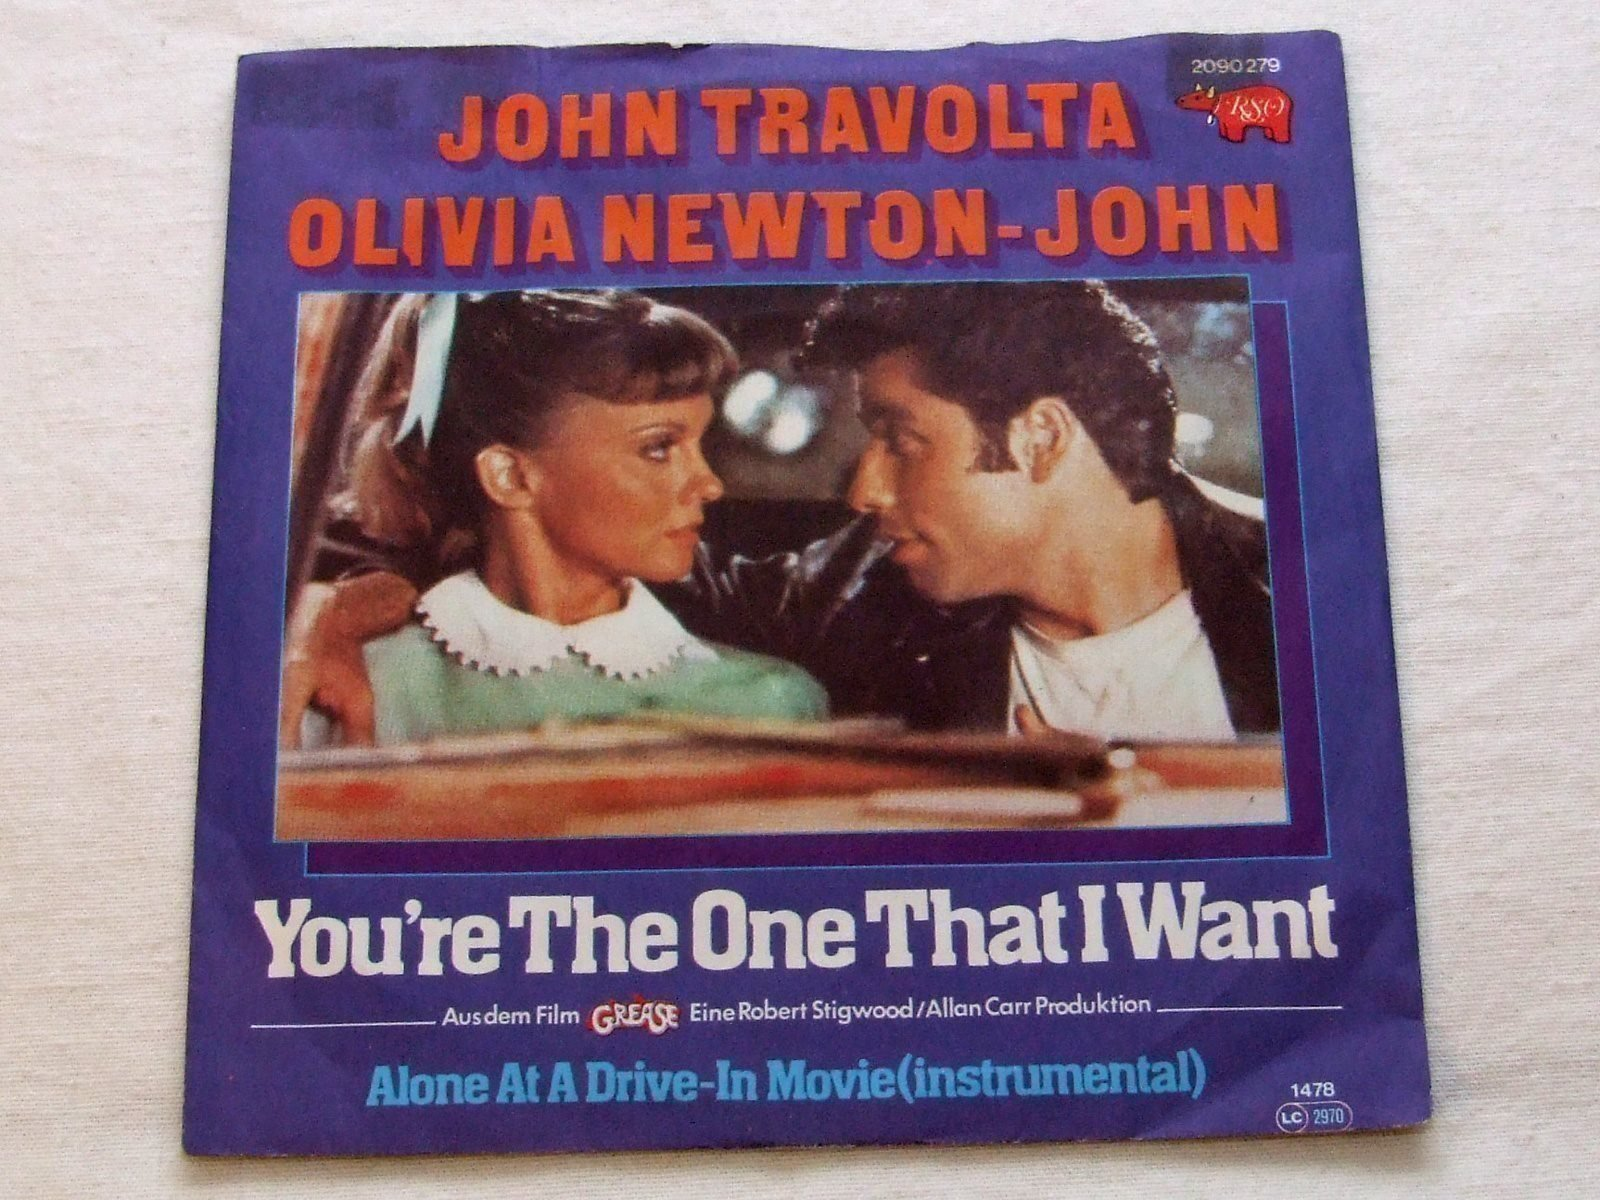 John Travolta / Olivia Newton-John - You're The One That I Want - Vinylsingel